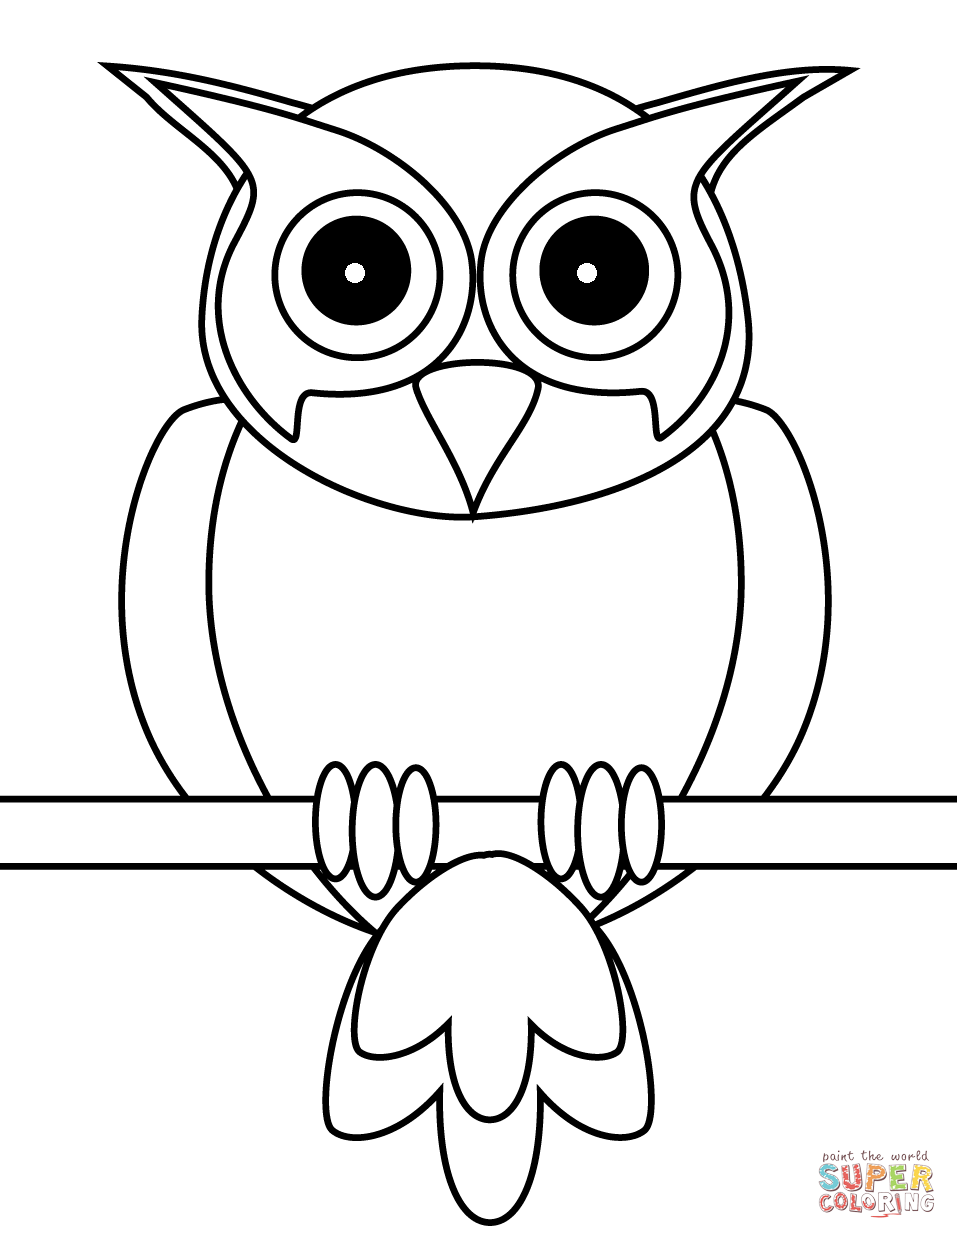 Owl Coloring Page Free Printable Coloring Pages